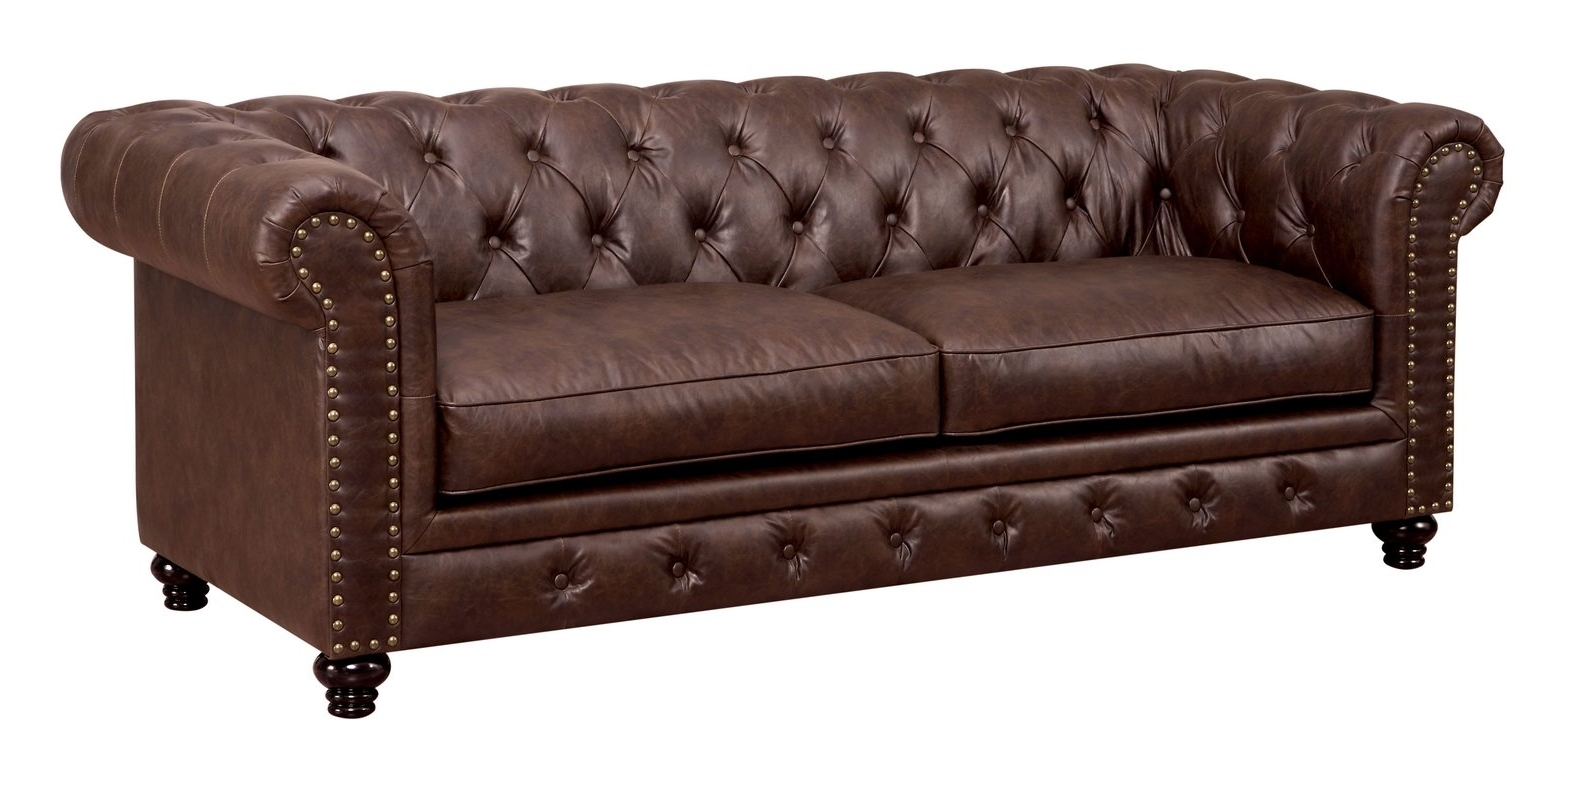 Wayfair For Chesterfield Sofas And Chairs (View 15 of 20)